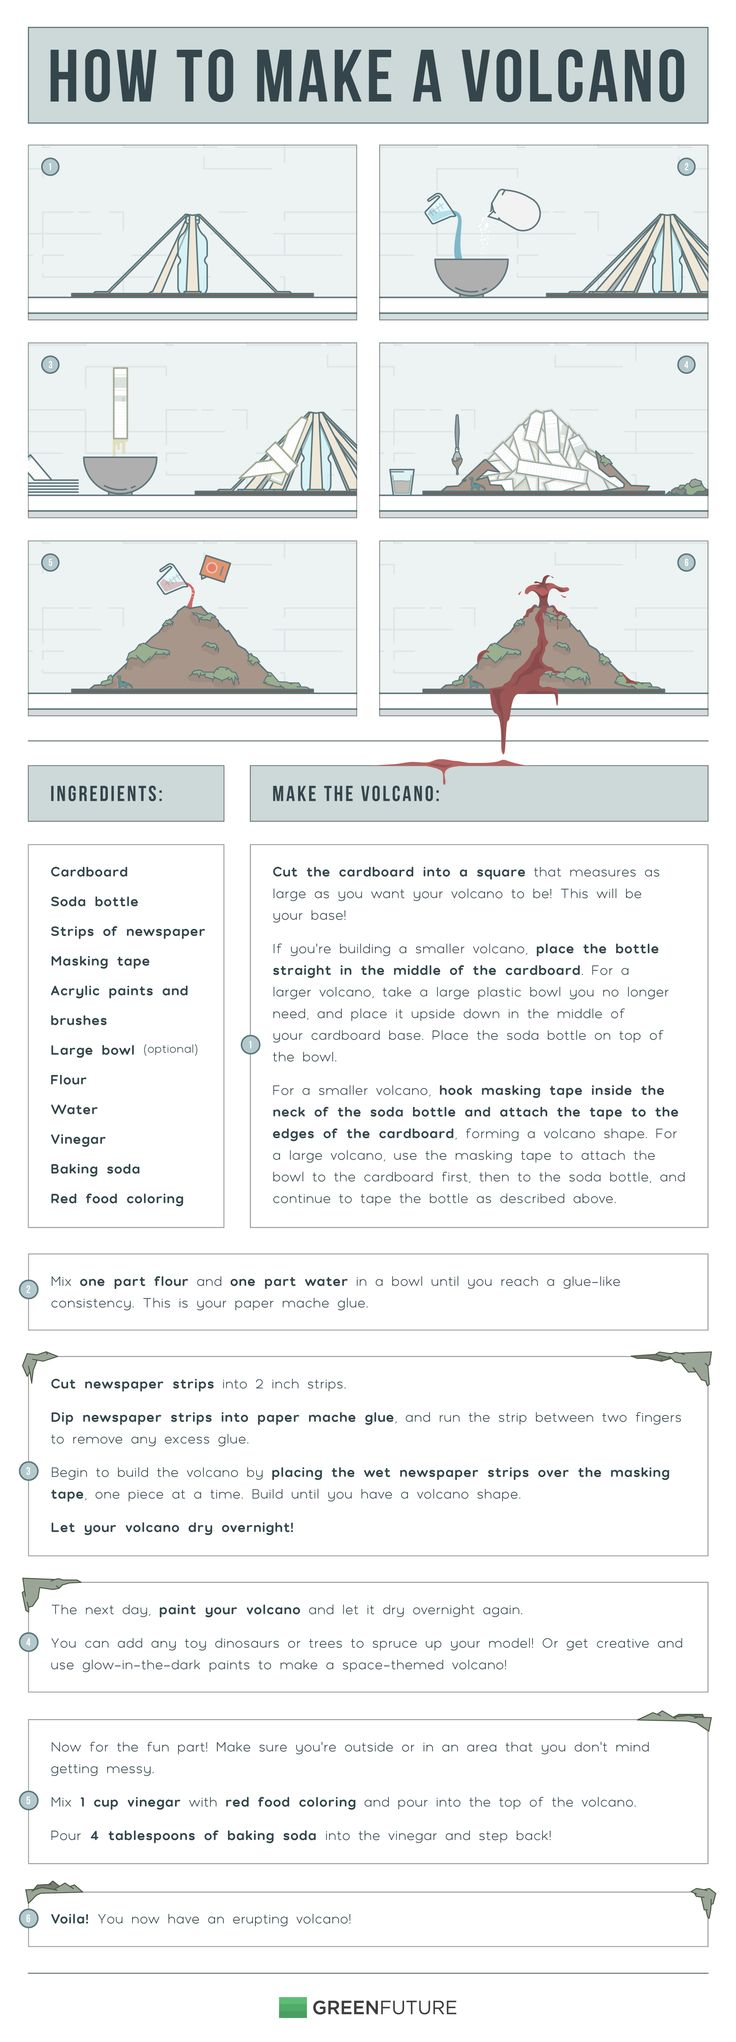 volcano project essay General facts about volcanoes how are volcanoes formed what do they emit are there any active ones in the us  what is the longest period of time a volcano.